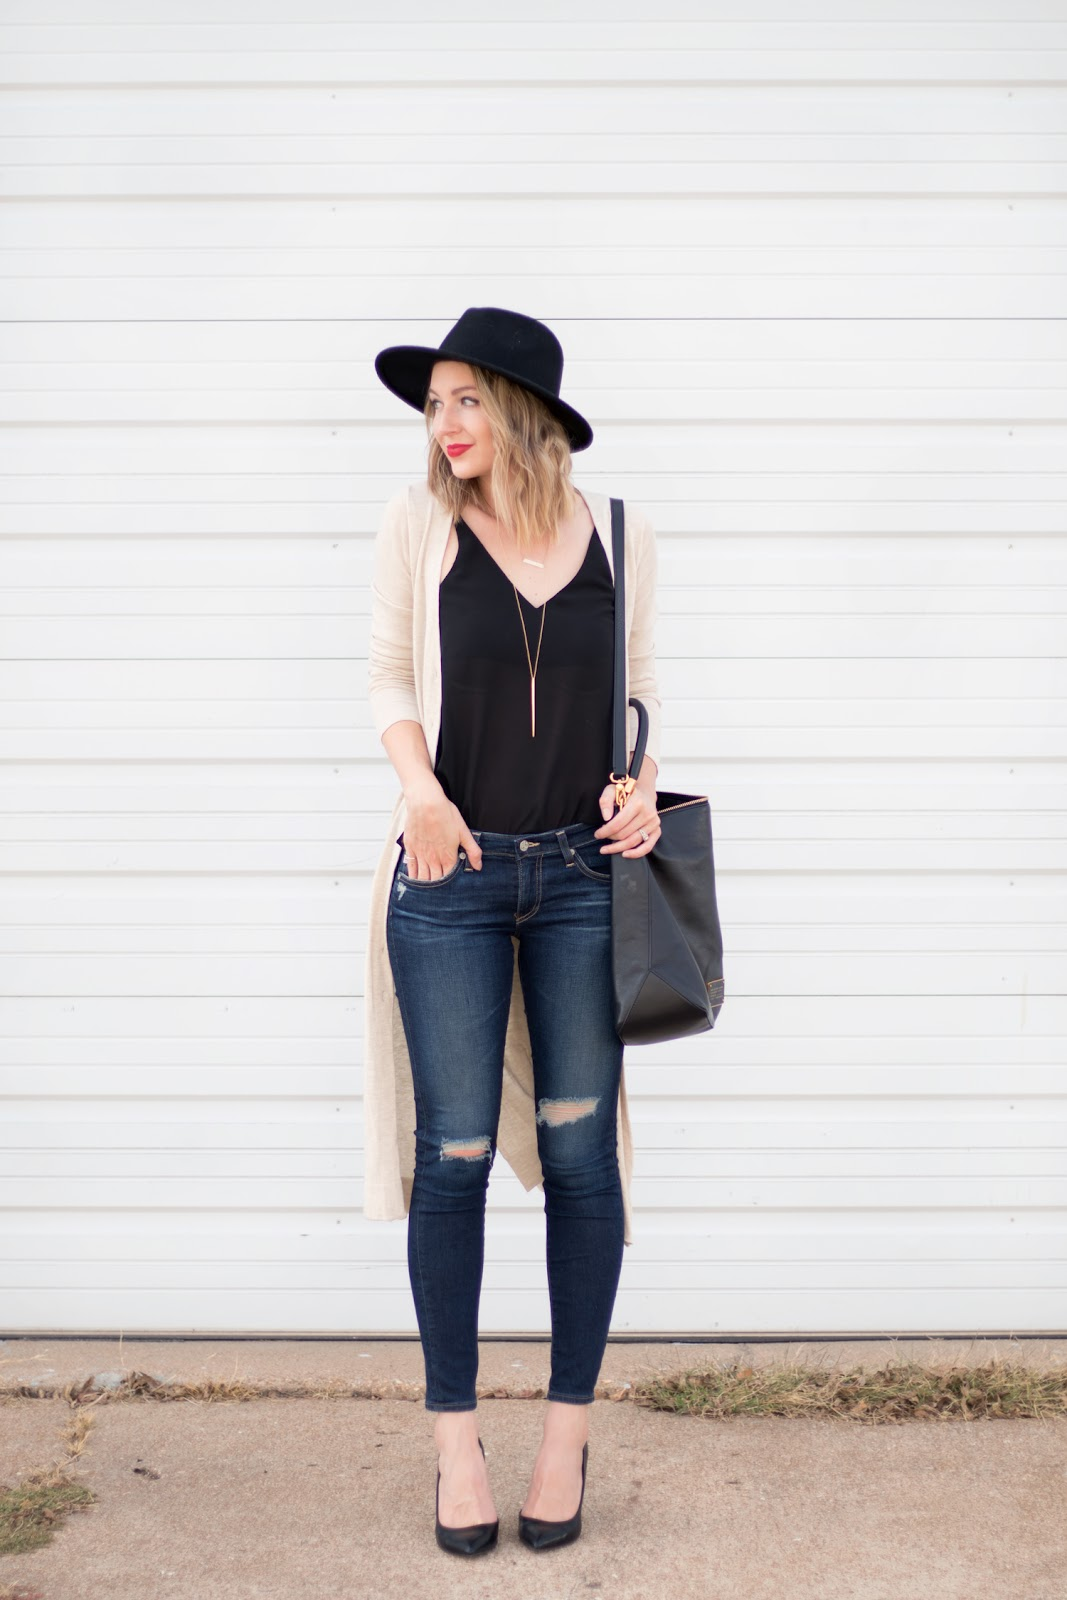 Long cardigan layered over jeans and a tank